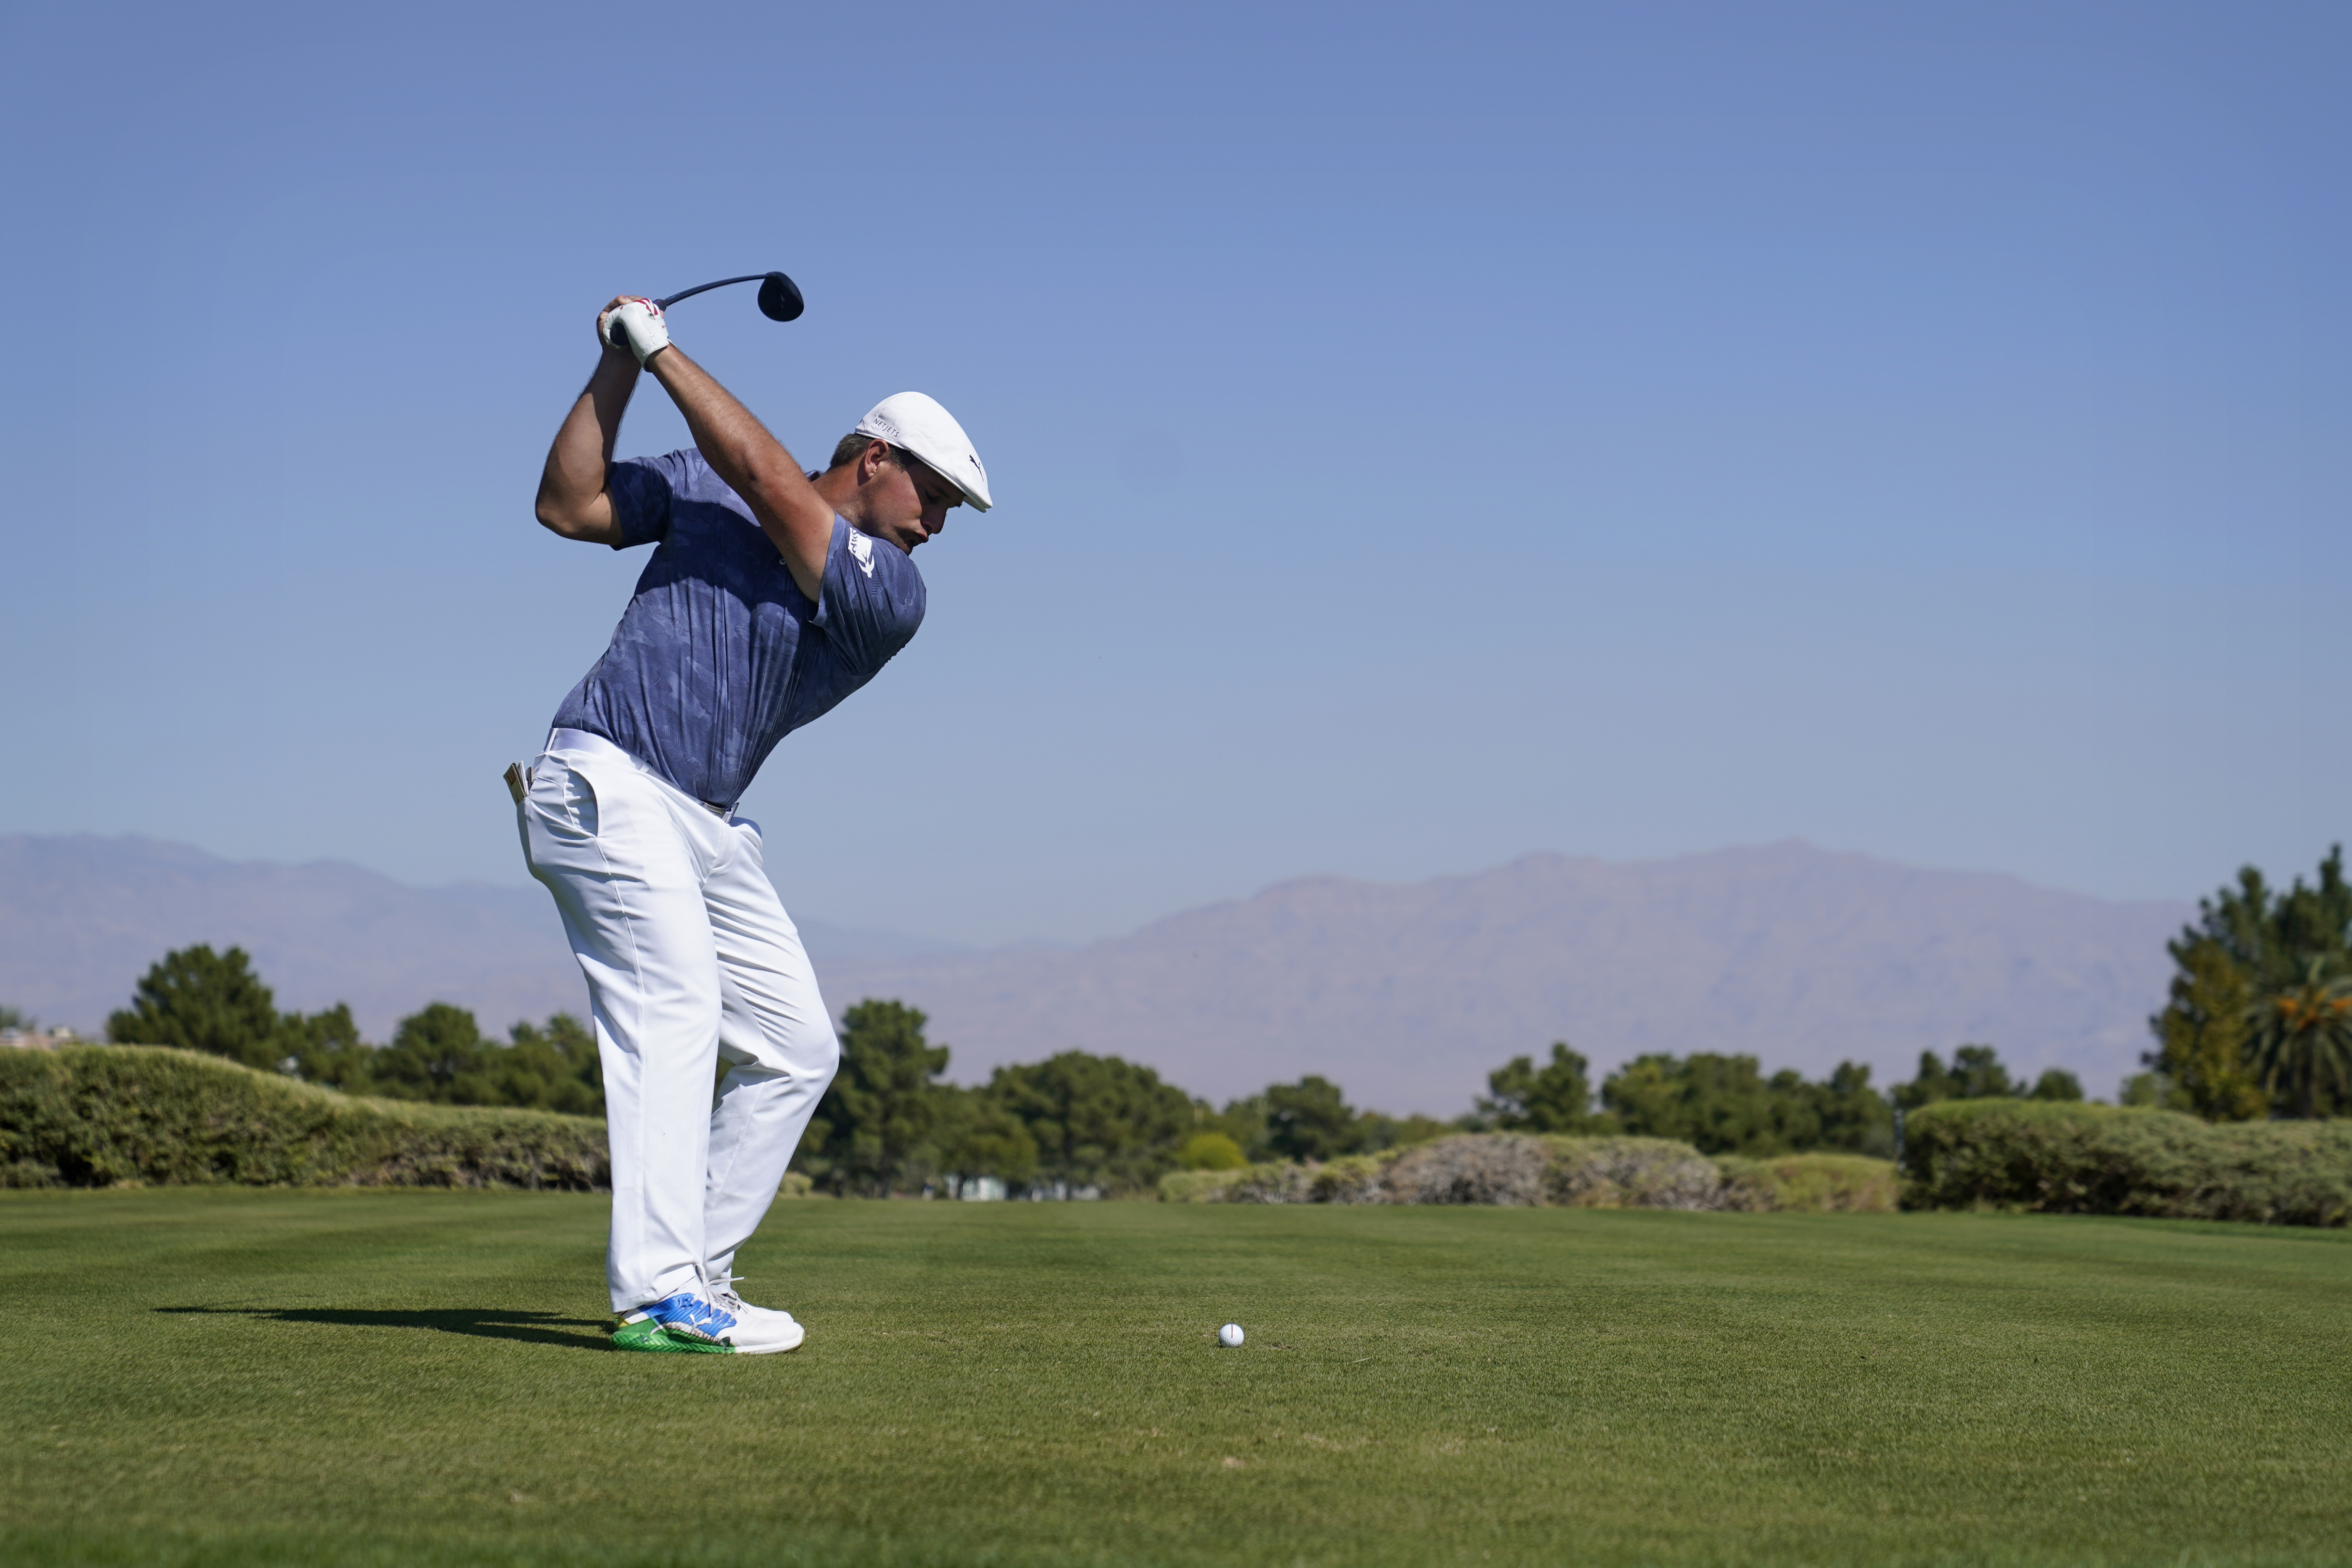 Sport betting terms in golfing pro bowl betting line